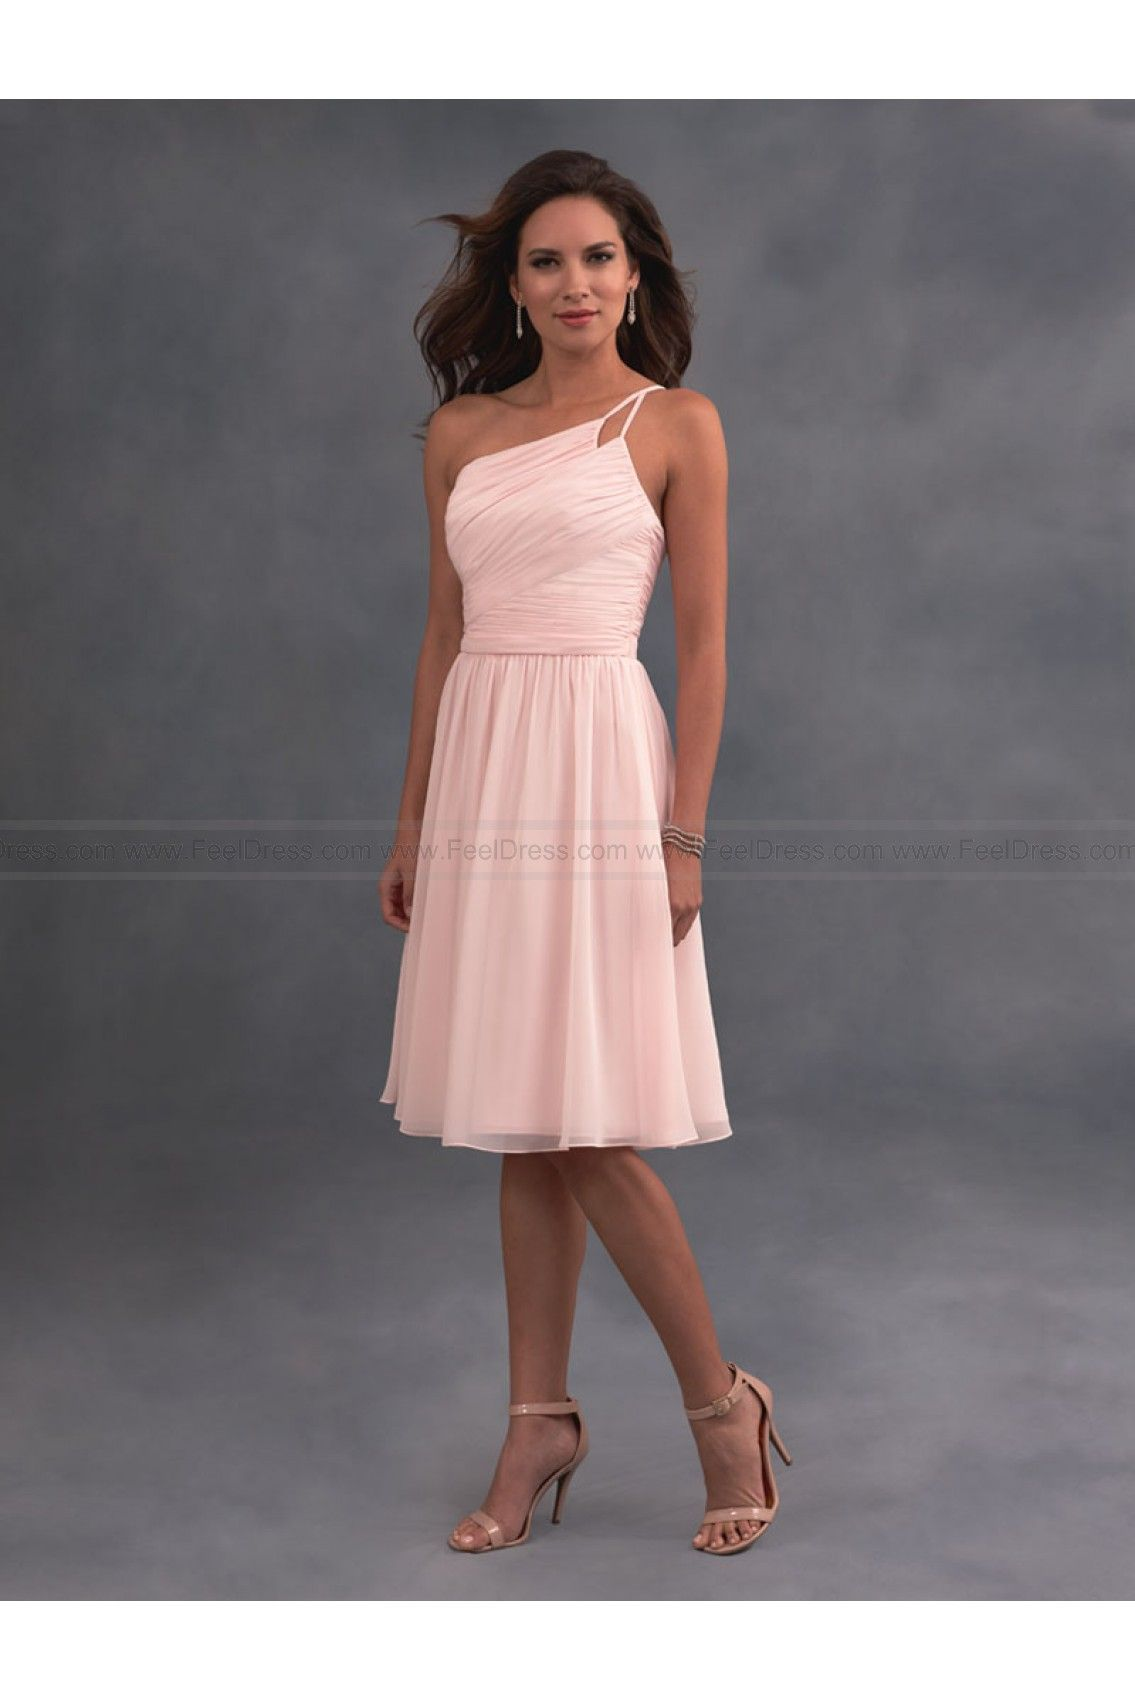 Alfred Angelo Bridesmaid Dress Style 7396S New! | Alfred Angelo ...